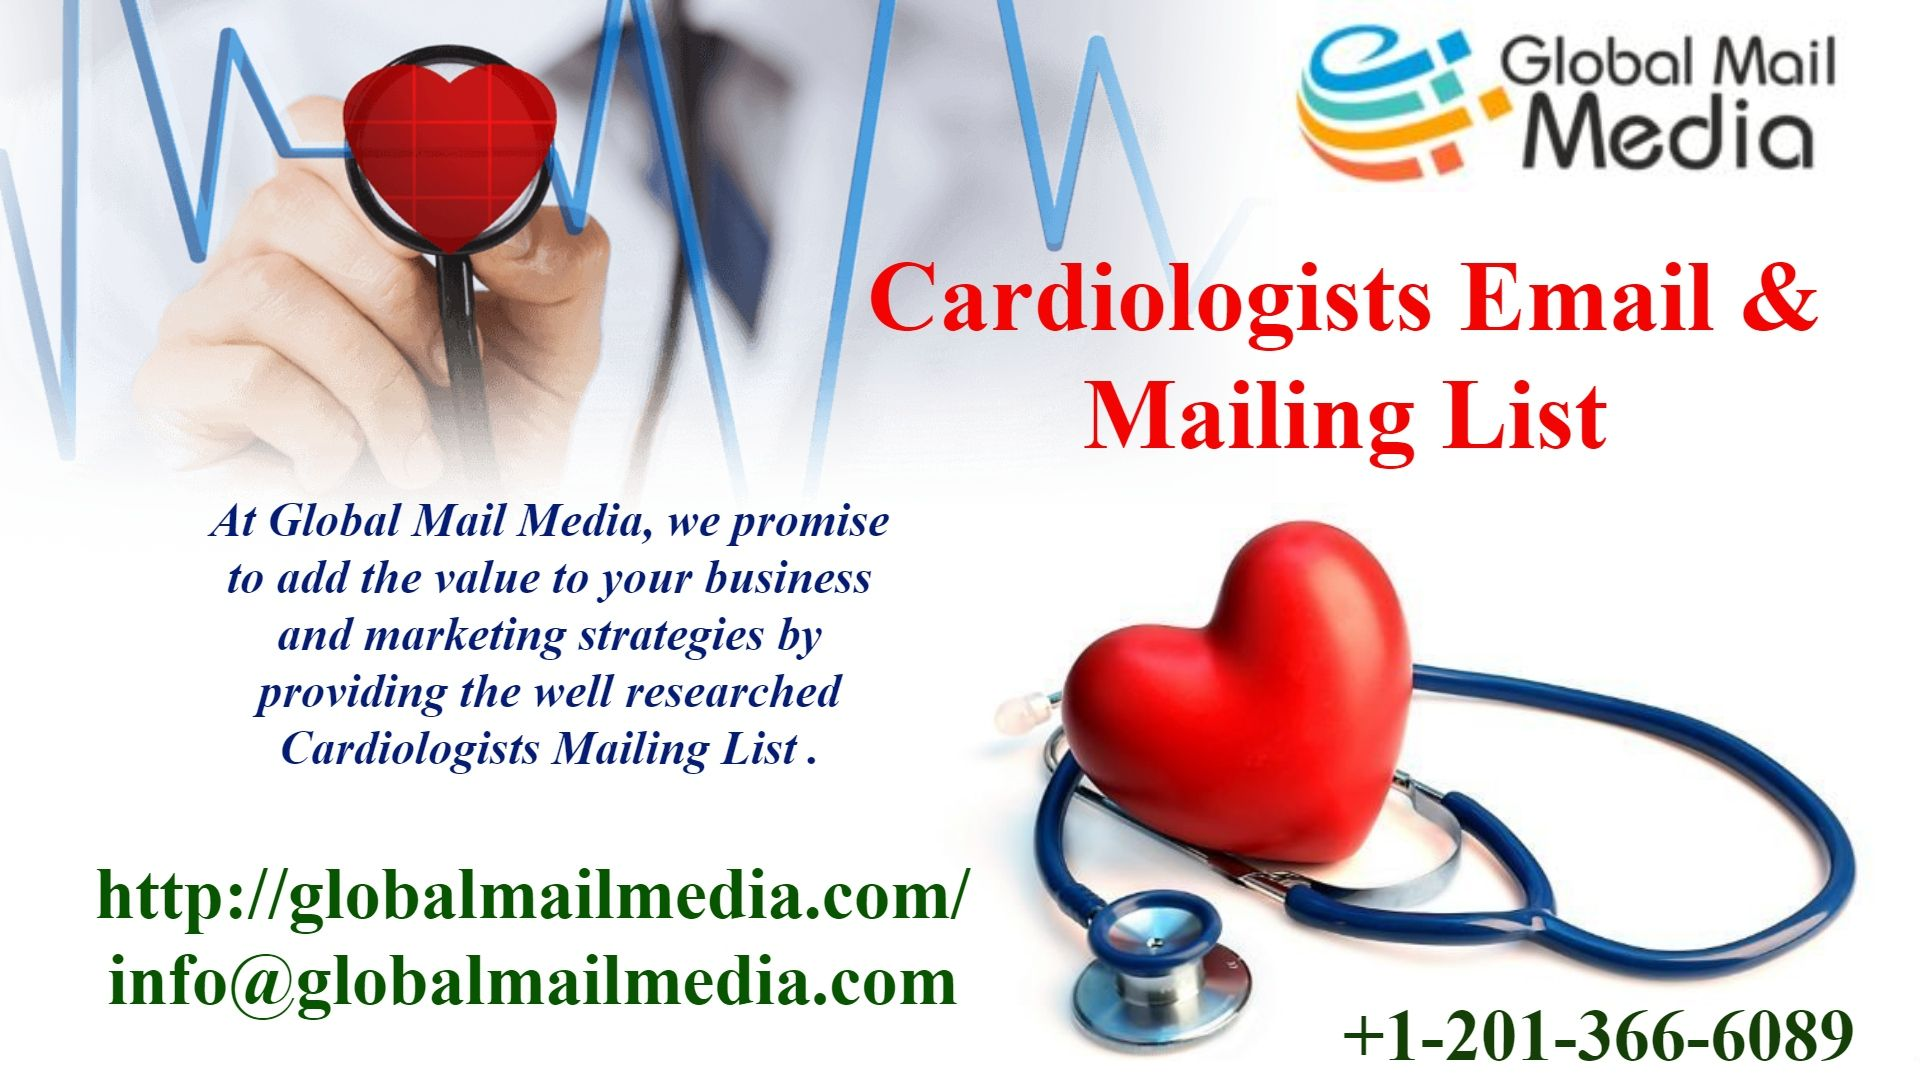 Cardiologists Email & Mailing List Business